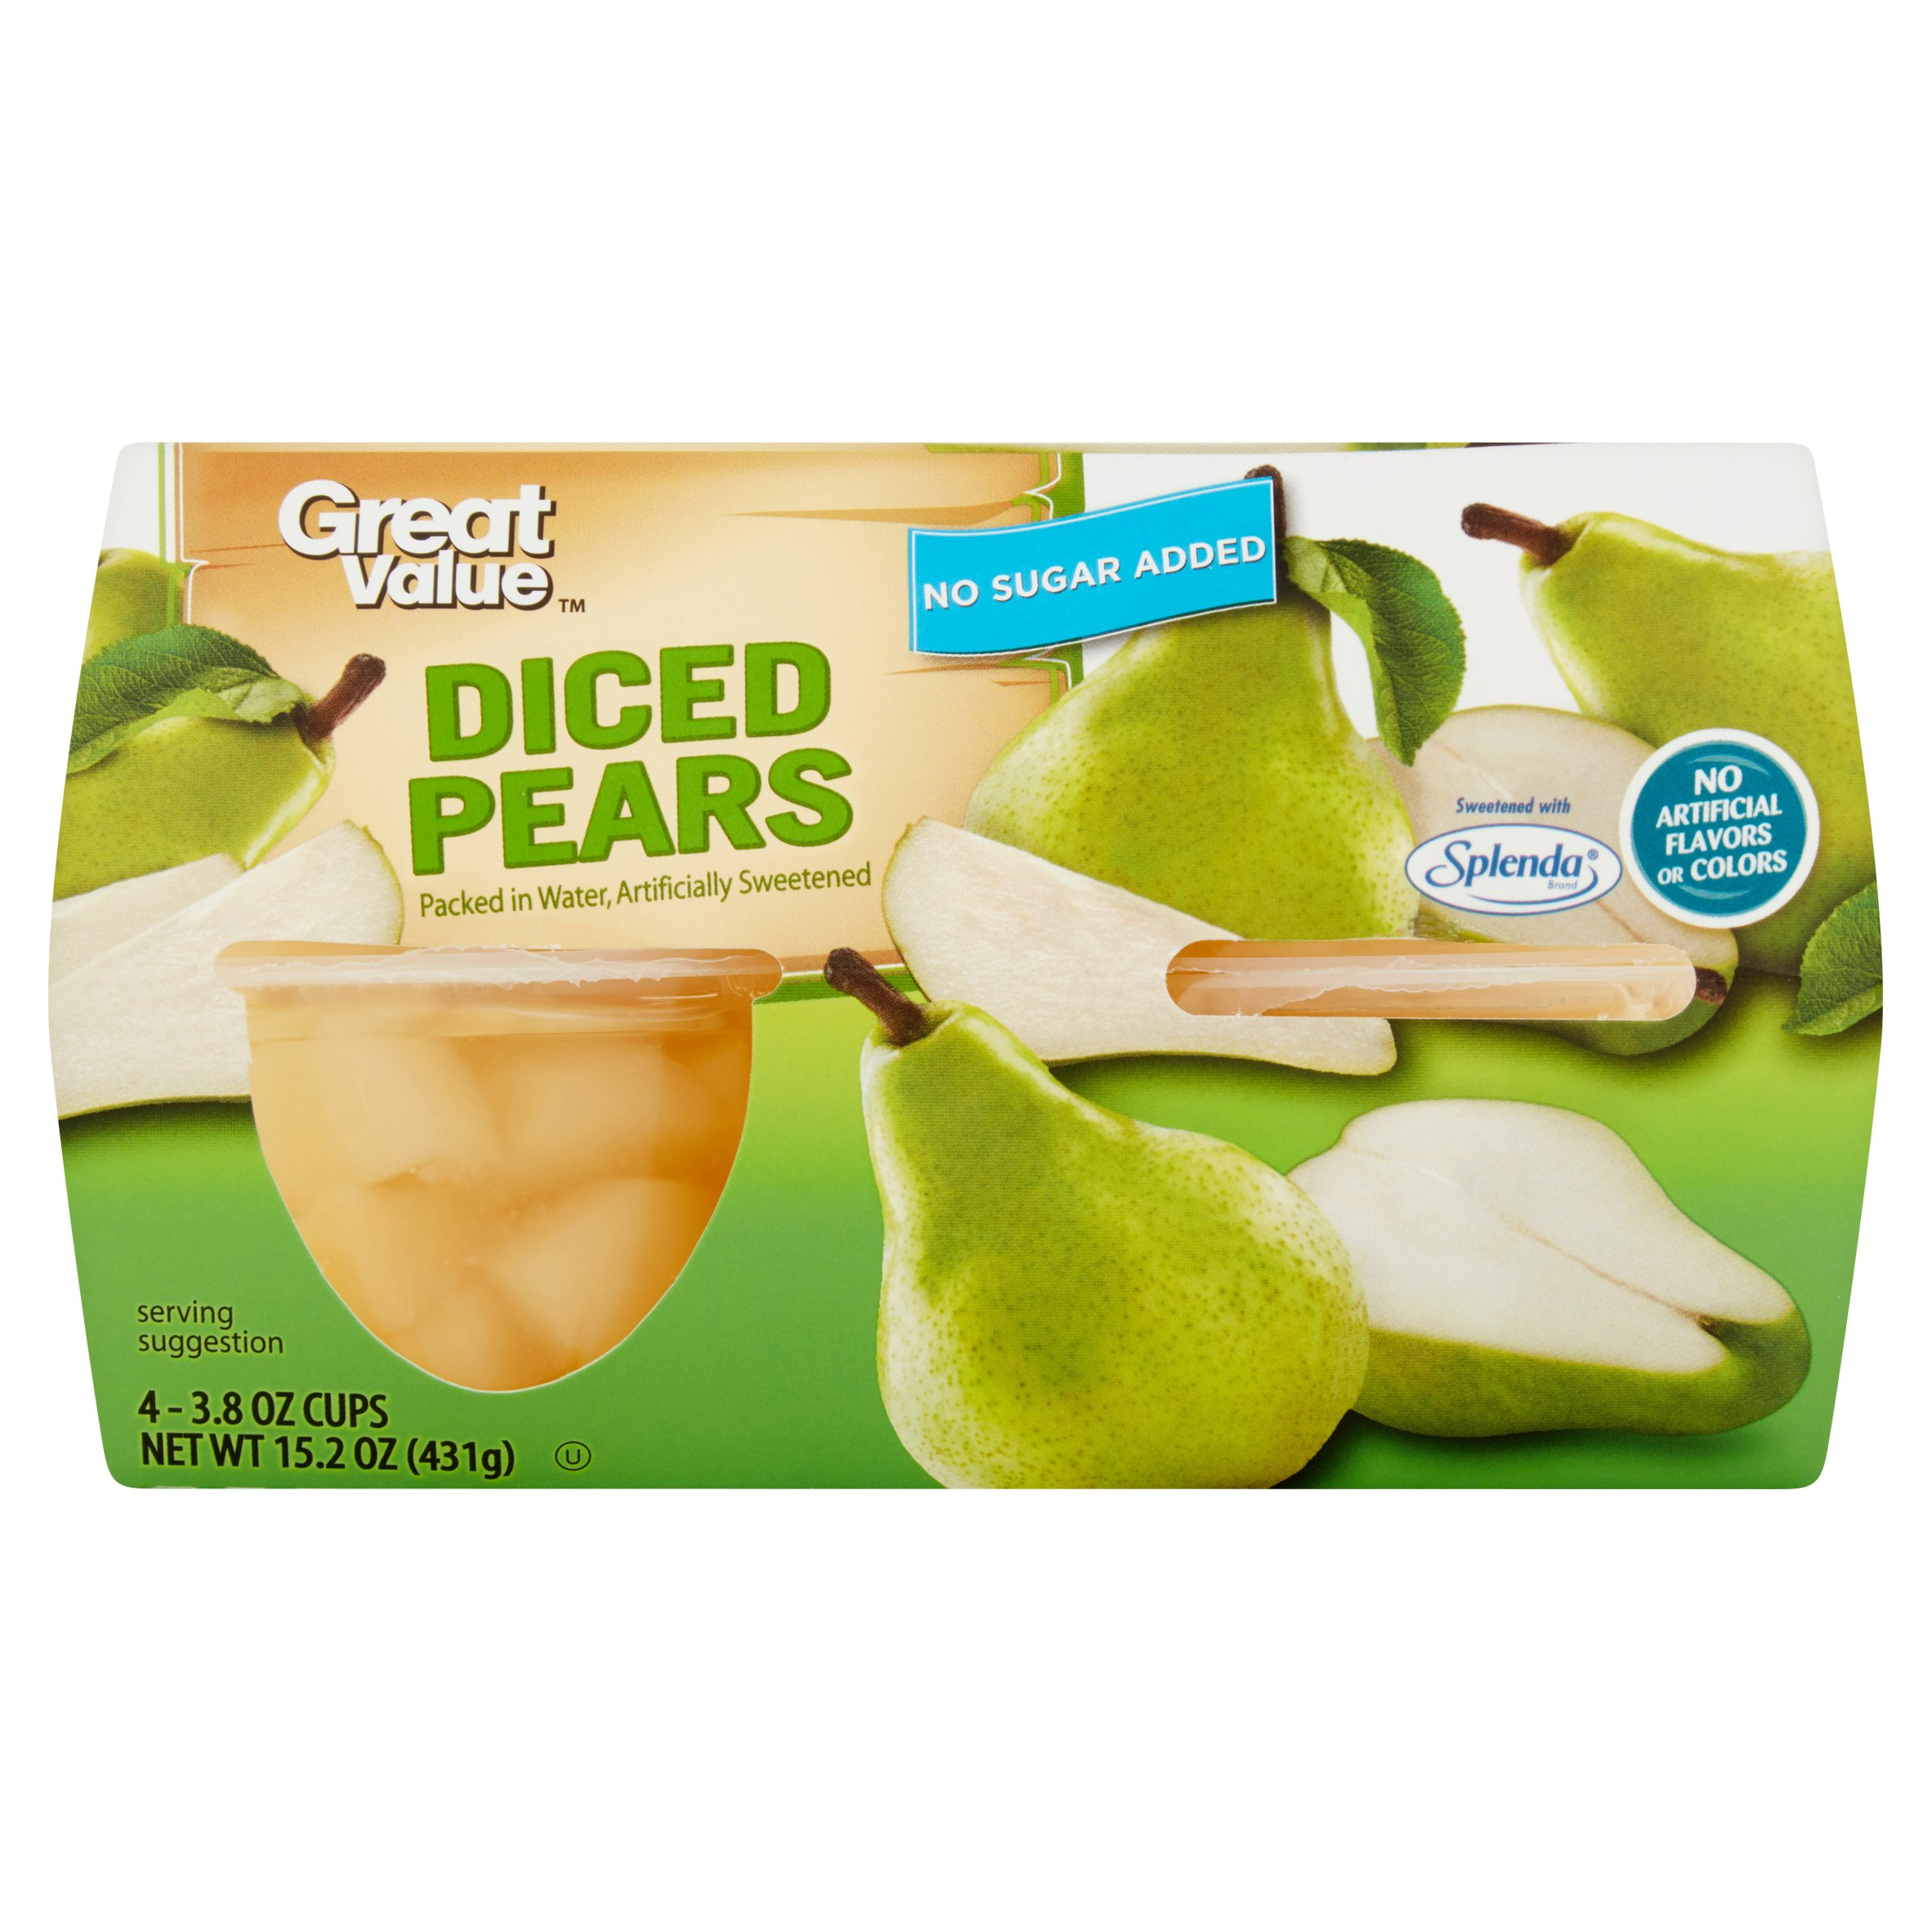 (24 Cups) Great Value No Sugar Added Diced Pear Fruit Cups, 3.8 oz cups